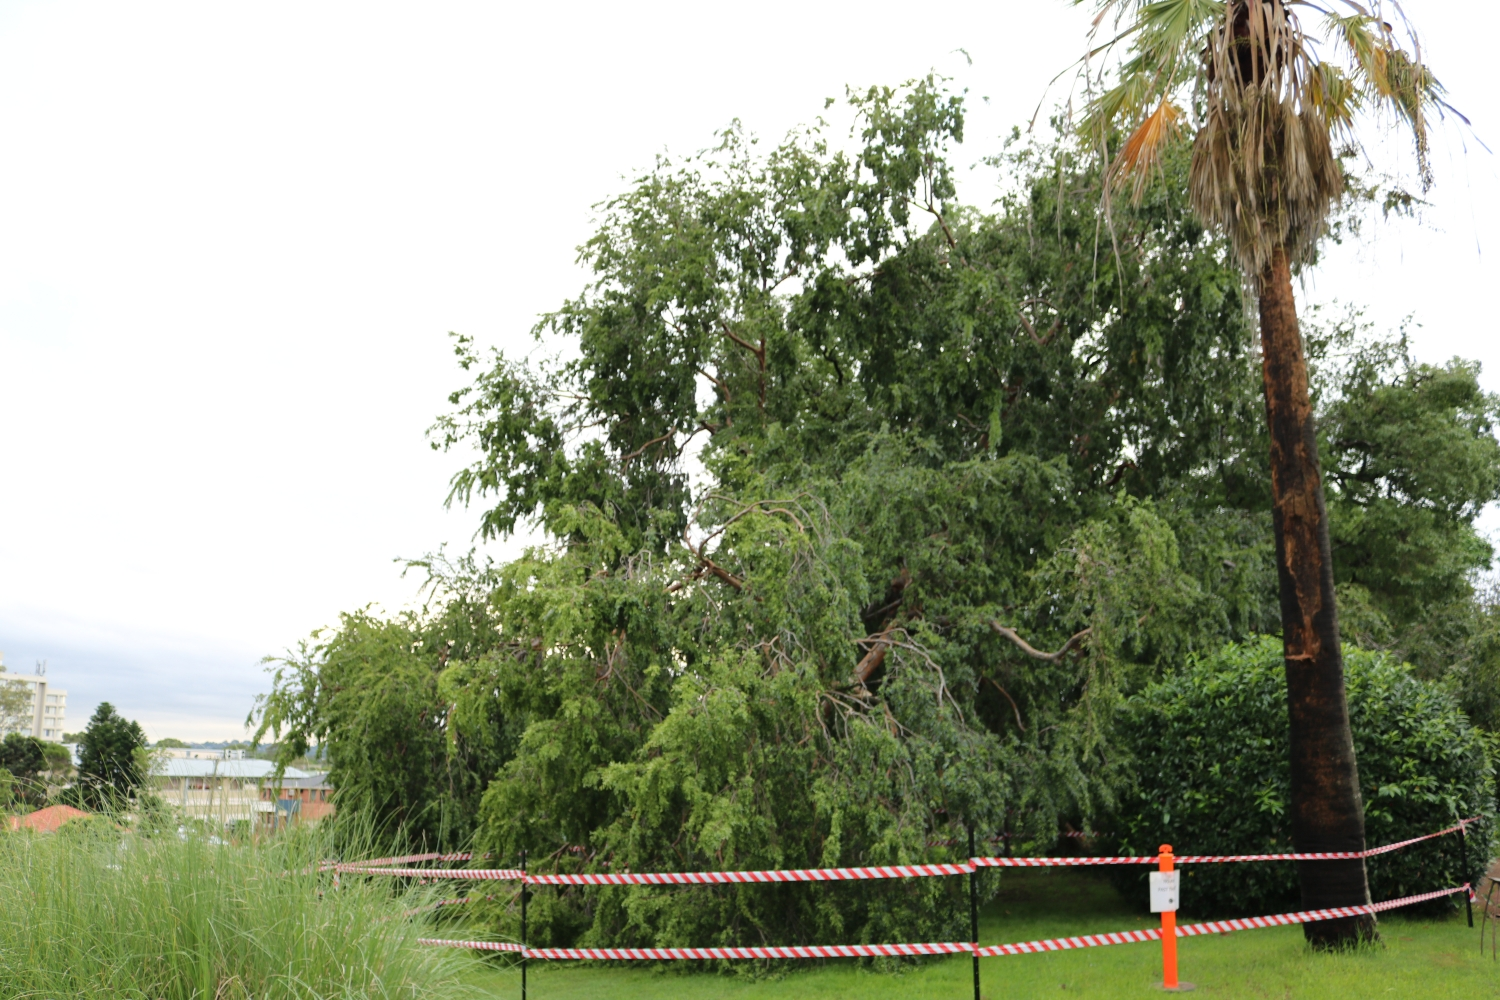 The exclusion zone at Elizabeth Farm around the Chinese Elm tree.